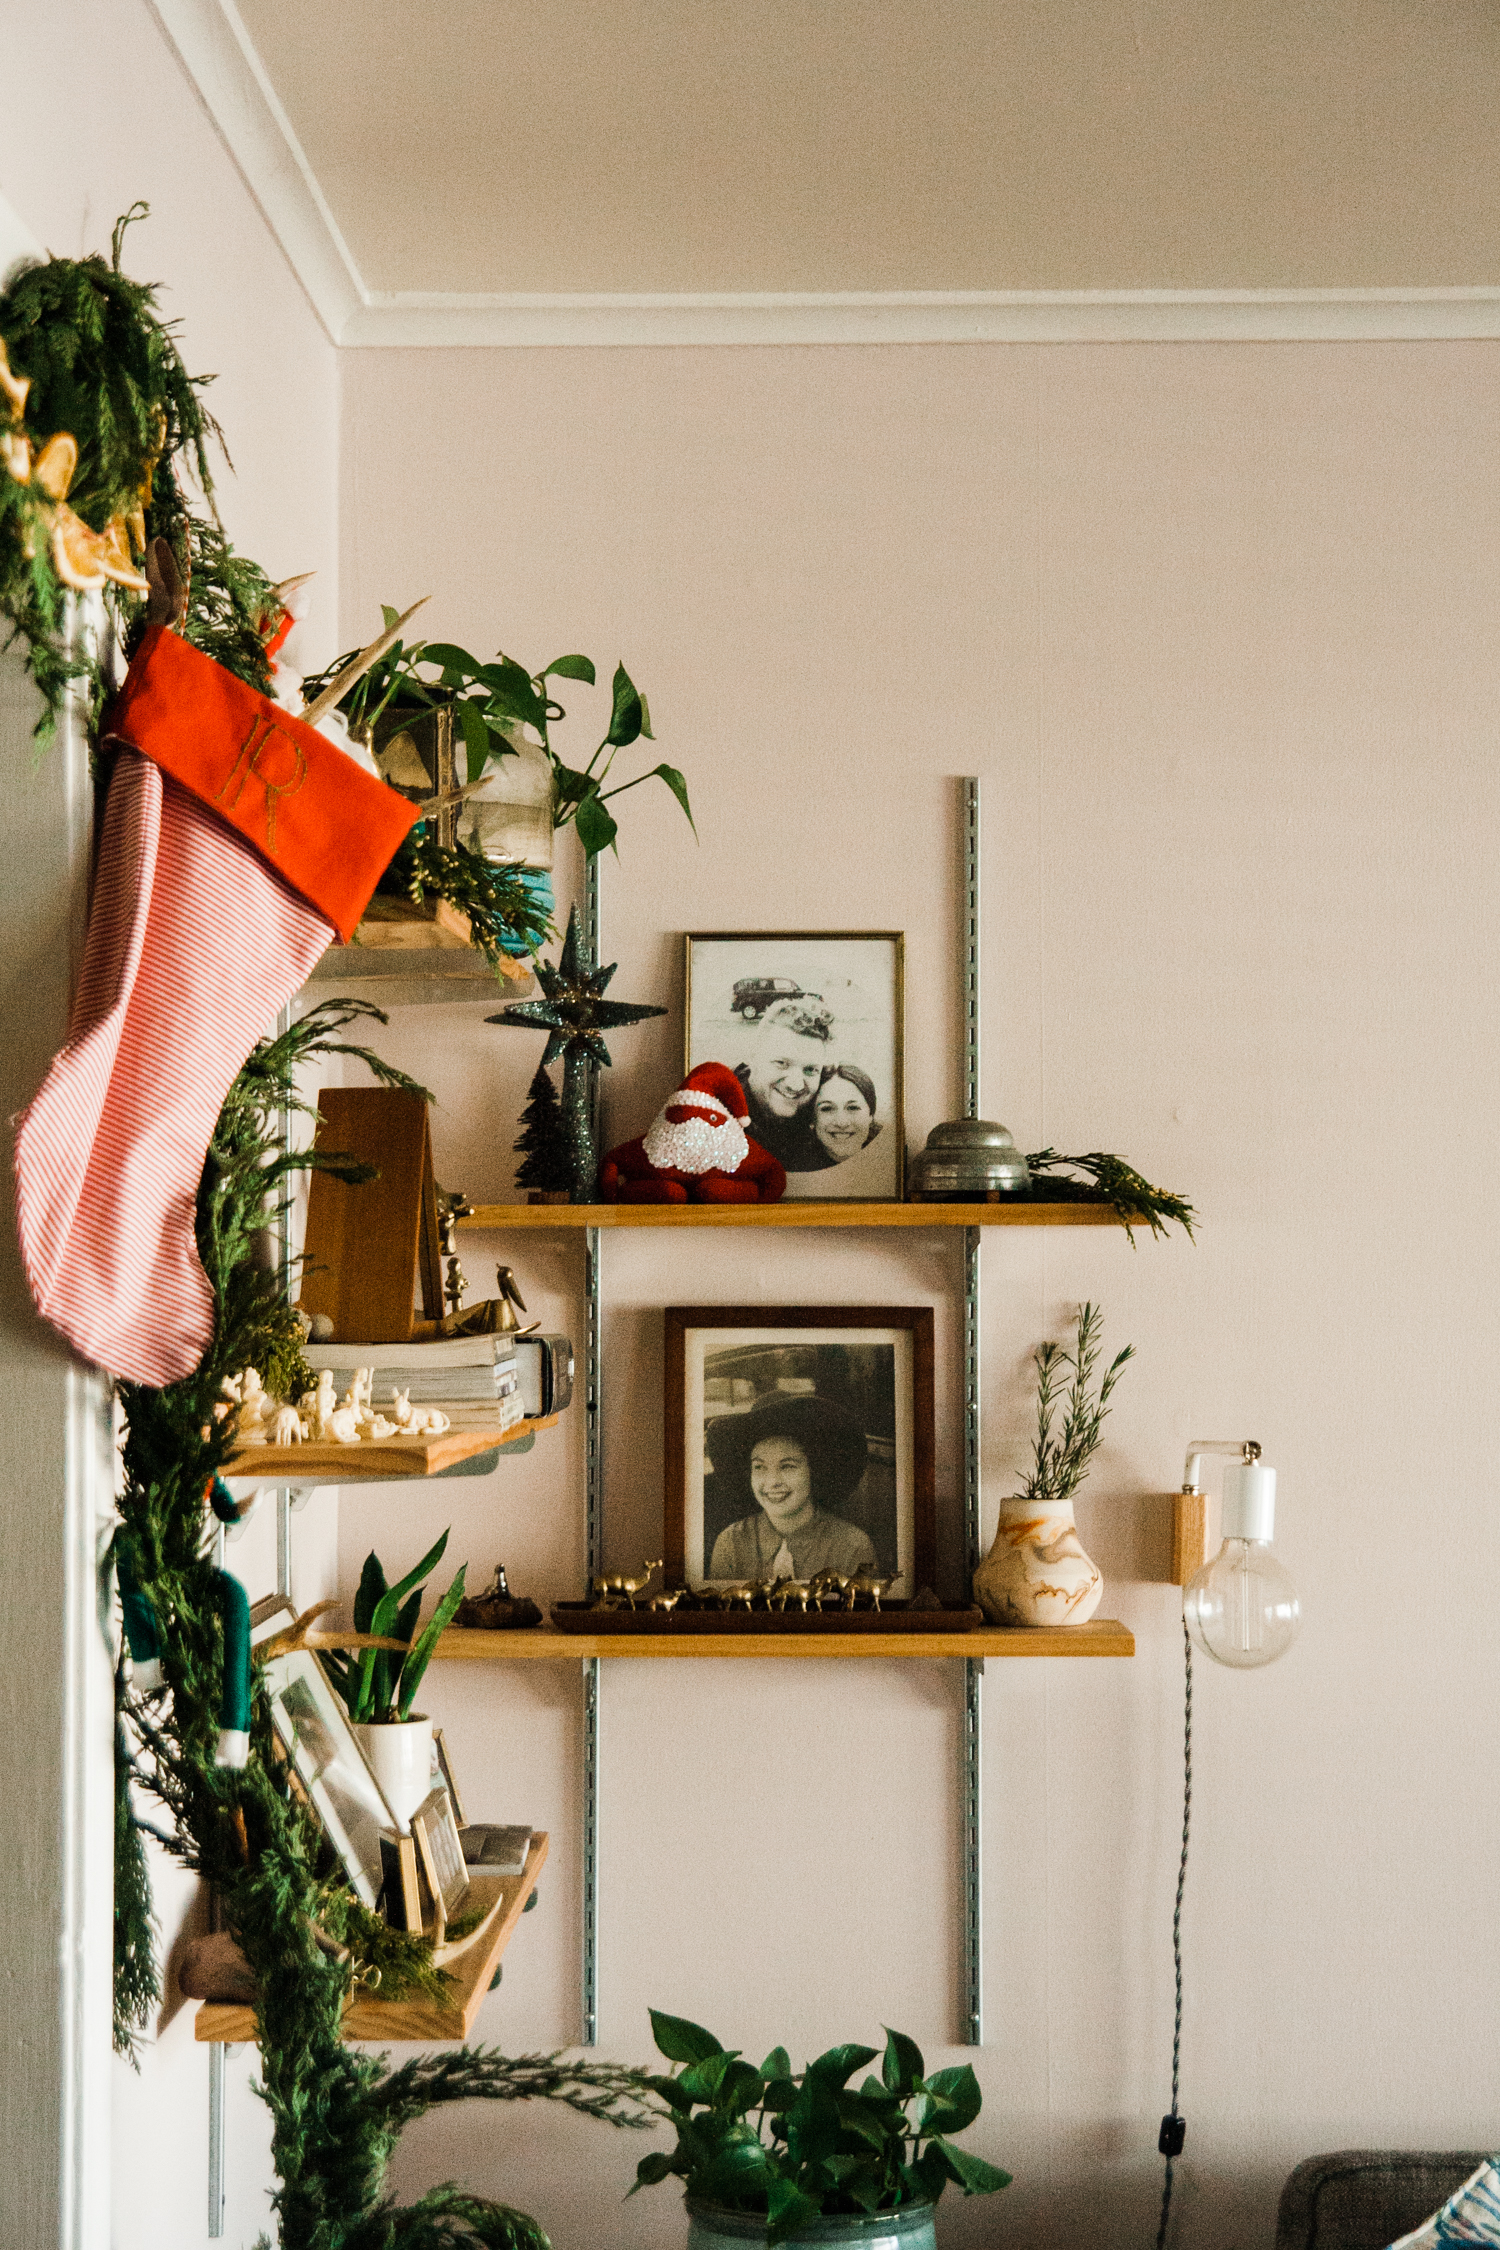 """At the time of these photos, I just started embroidering the stockings I made. See the base outline of an """"R"""" for Ryan? Top shelf is the glitter star we typically have on the top of our tree. It deserves to be out. Rosemary in my vase. That silly Santa elf my father-in-law Tom carefully cobbled."""